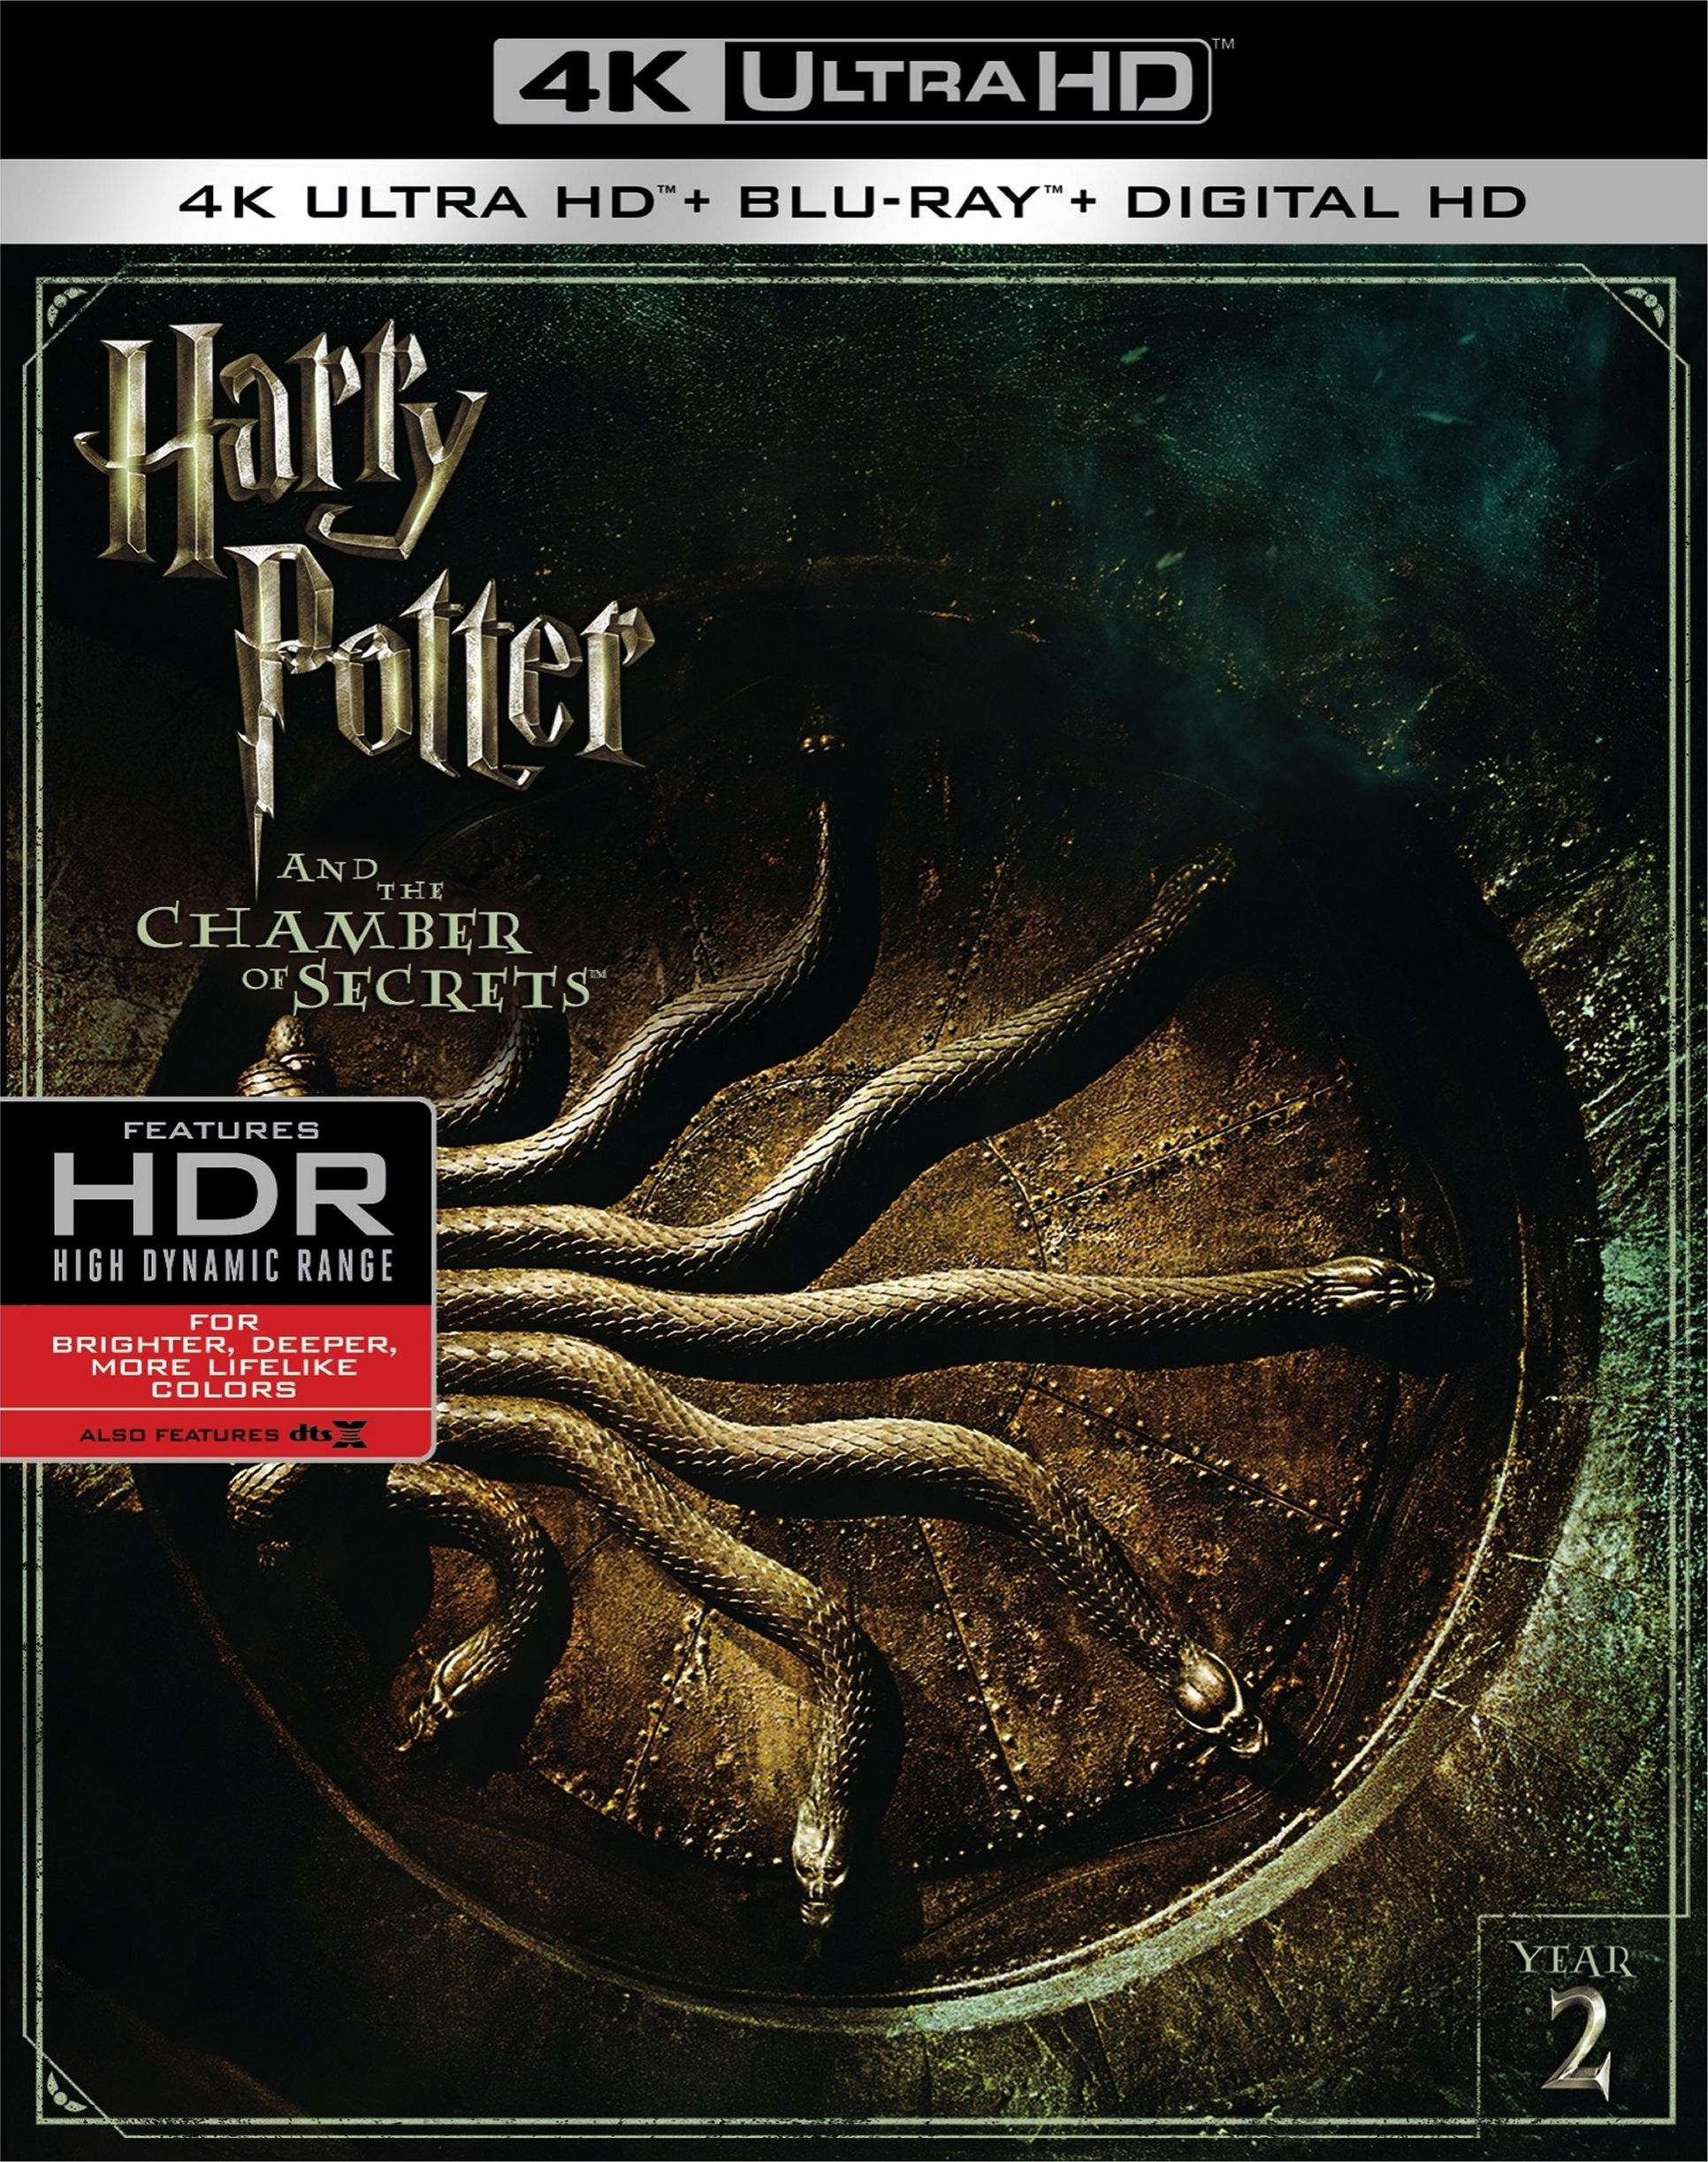 Harry Potter and the Chamber of Secrets 4K (2002) UHD Ultra HD Blu-ray